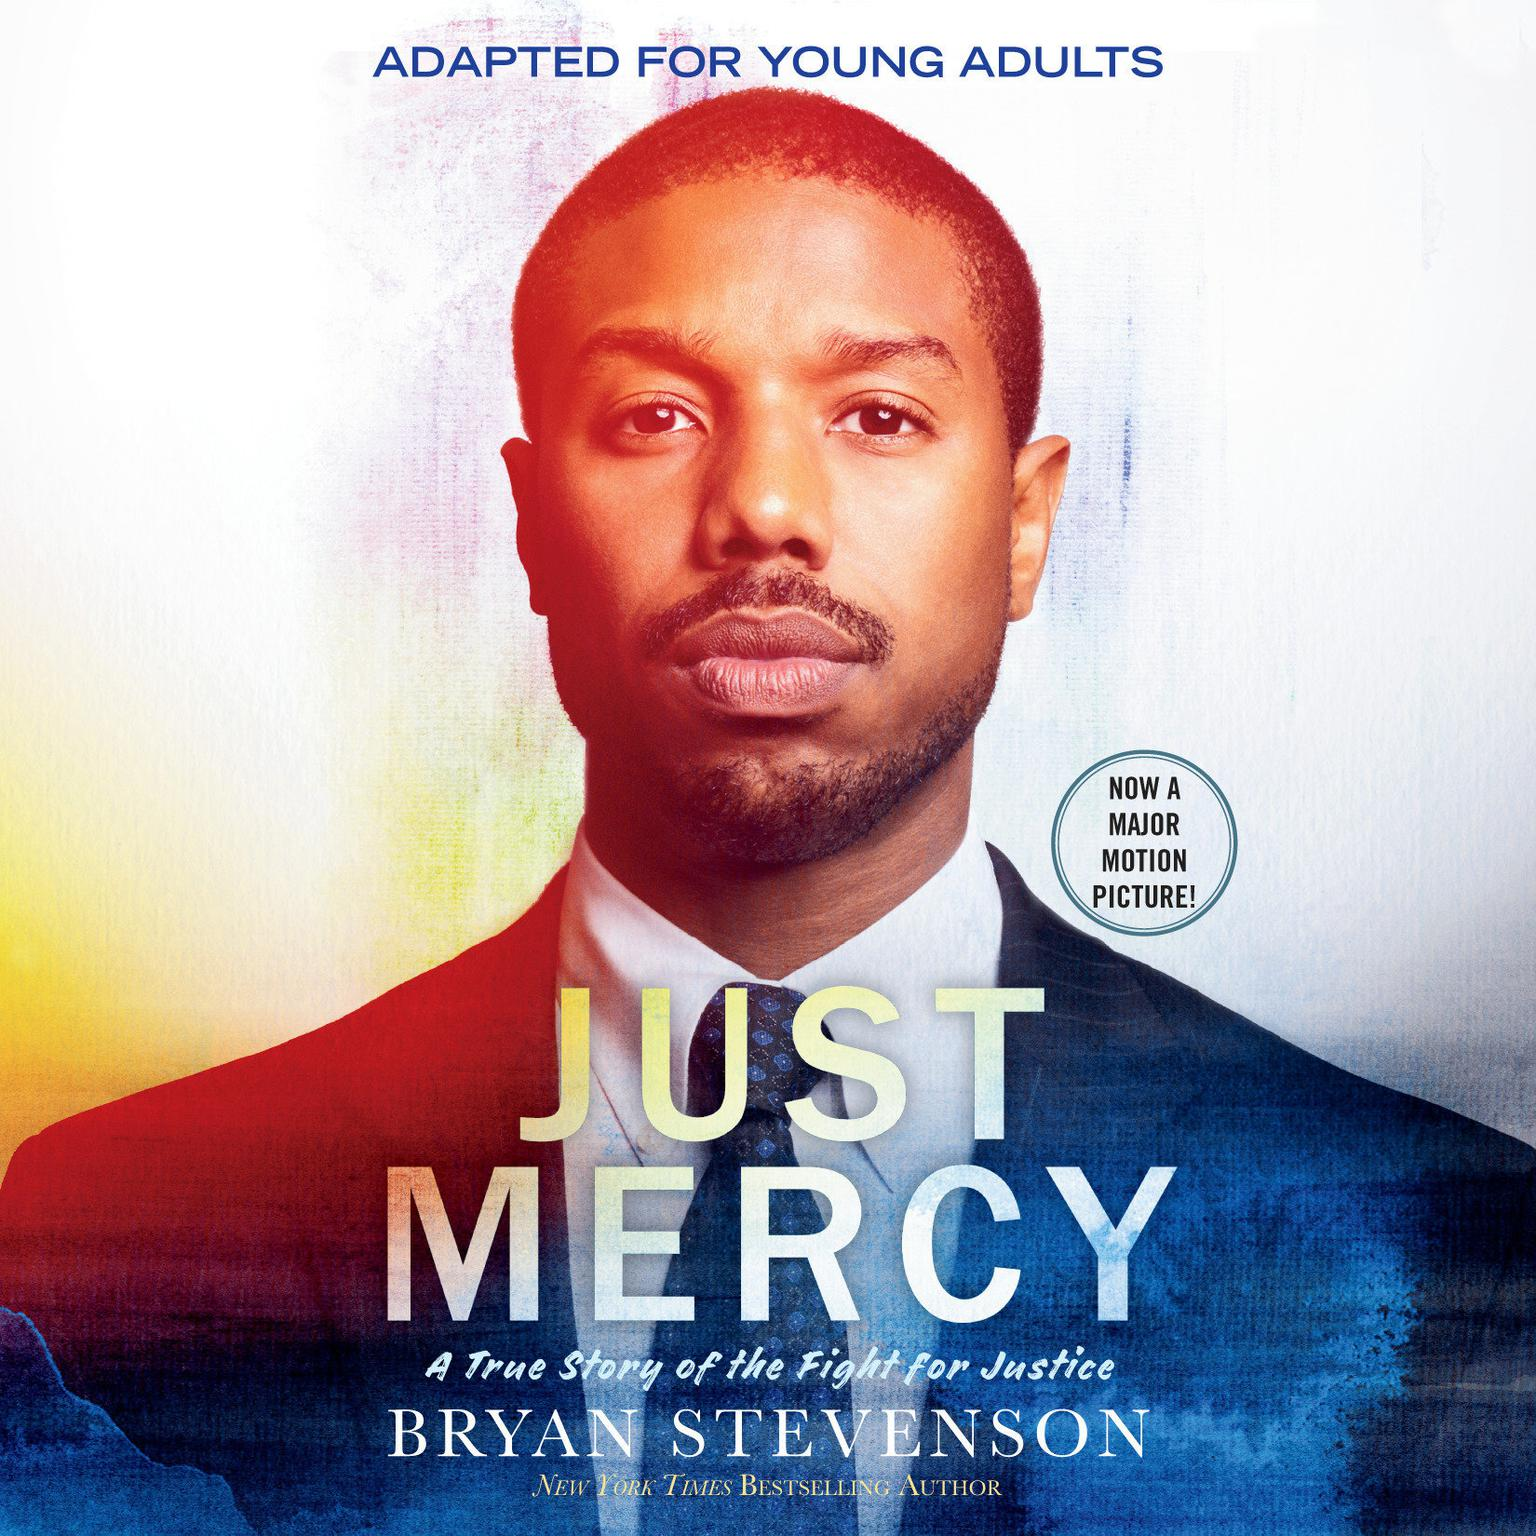 Printable Just Mercy (Movie Tie-In Edition, Adapted for Young Adults): A True Story of the Fight for Justice Audiobook Cover Art